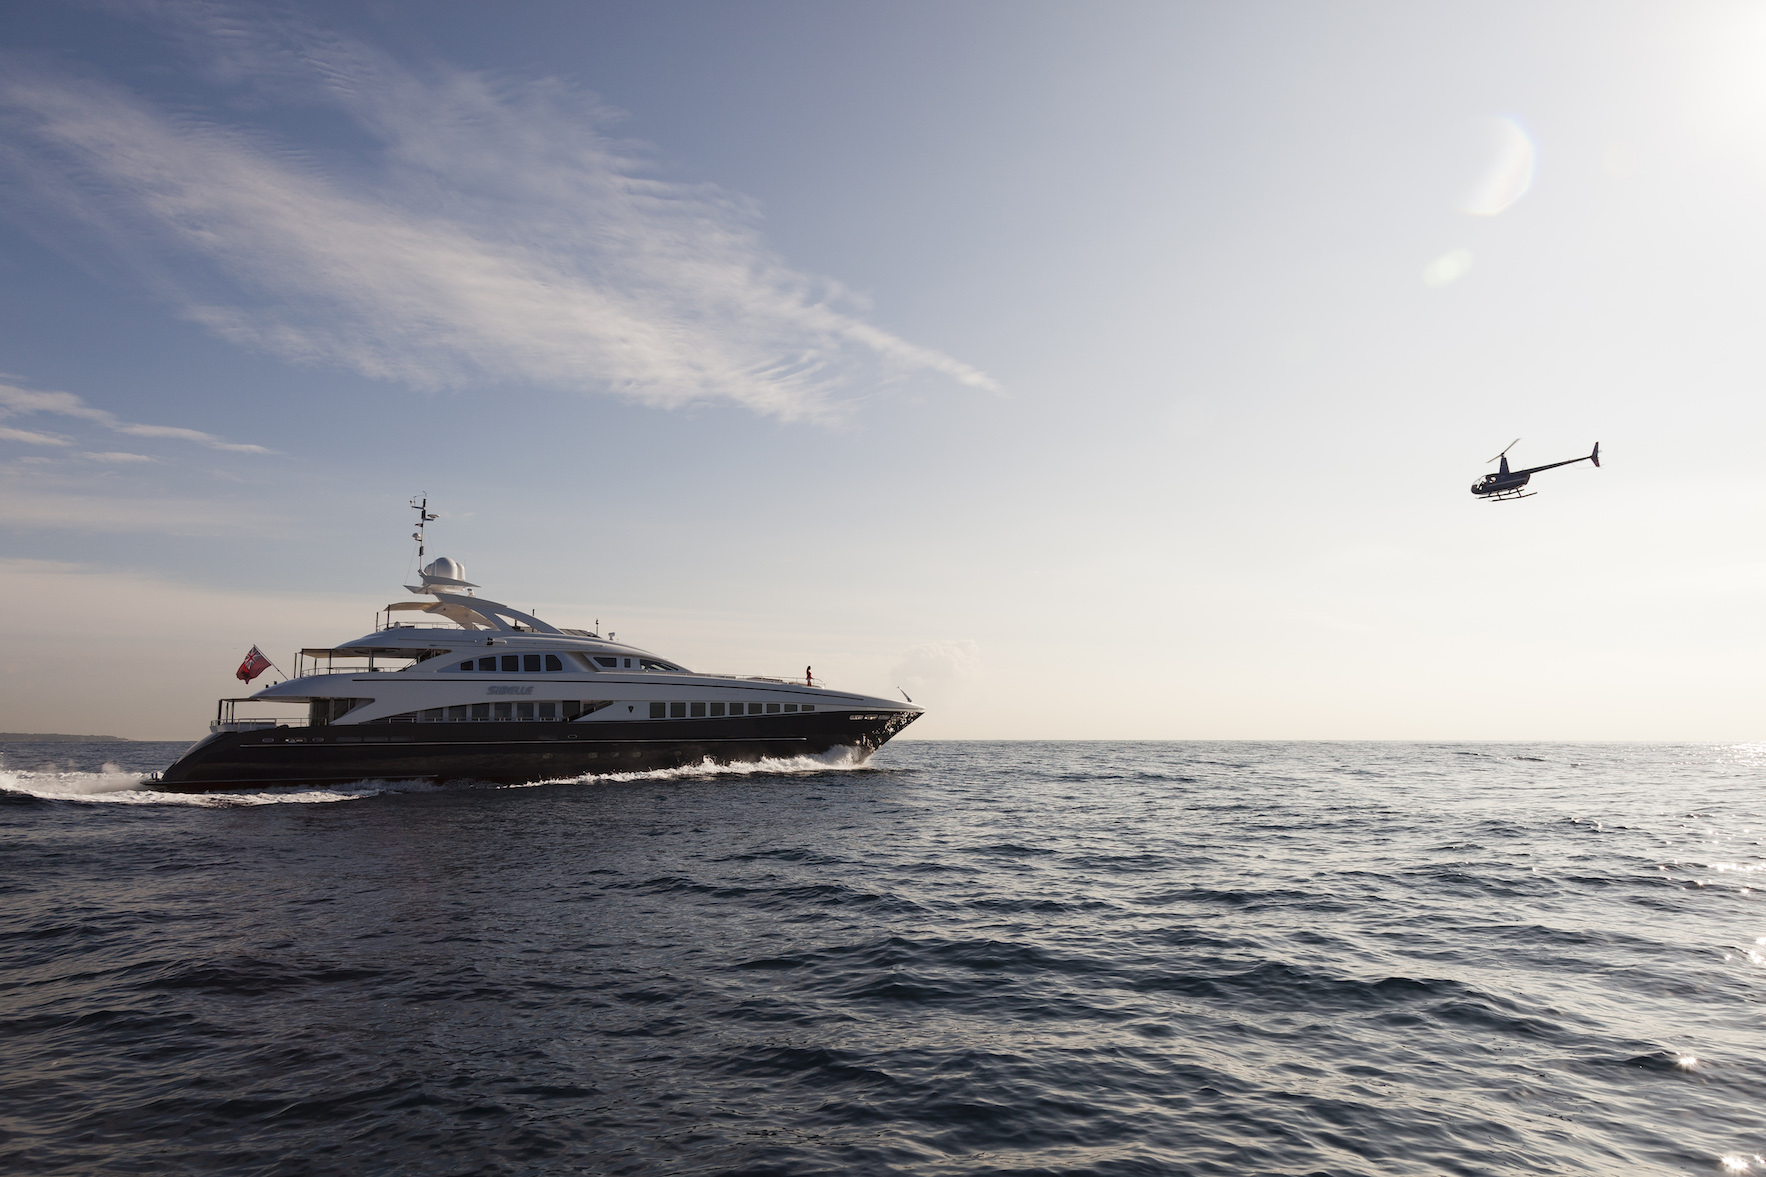 Heesen Yacht Sibelle - Photo Jeff Brown courtesy of Heesen